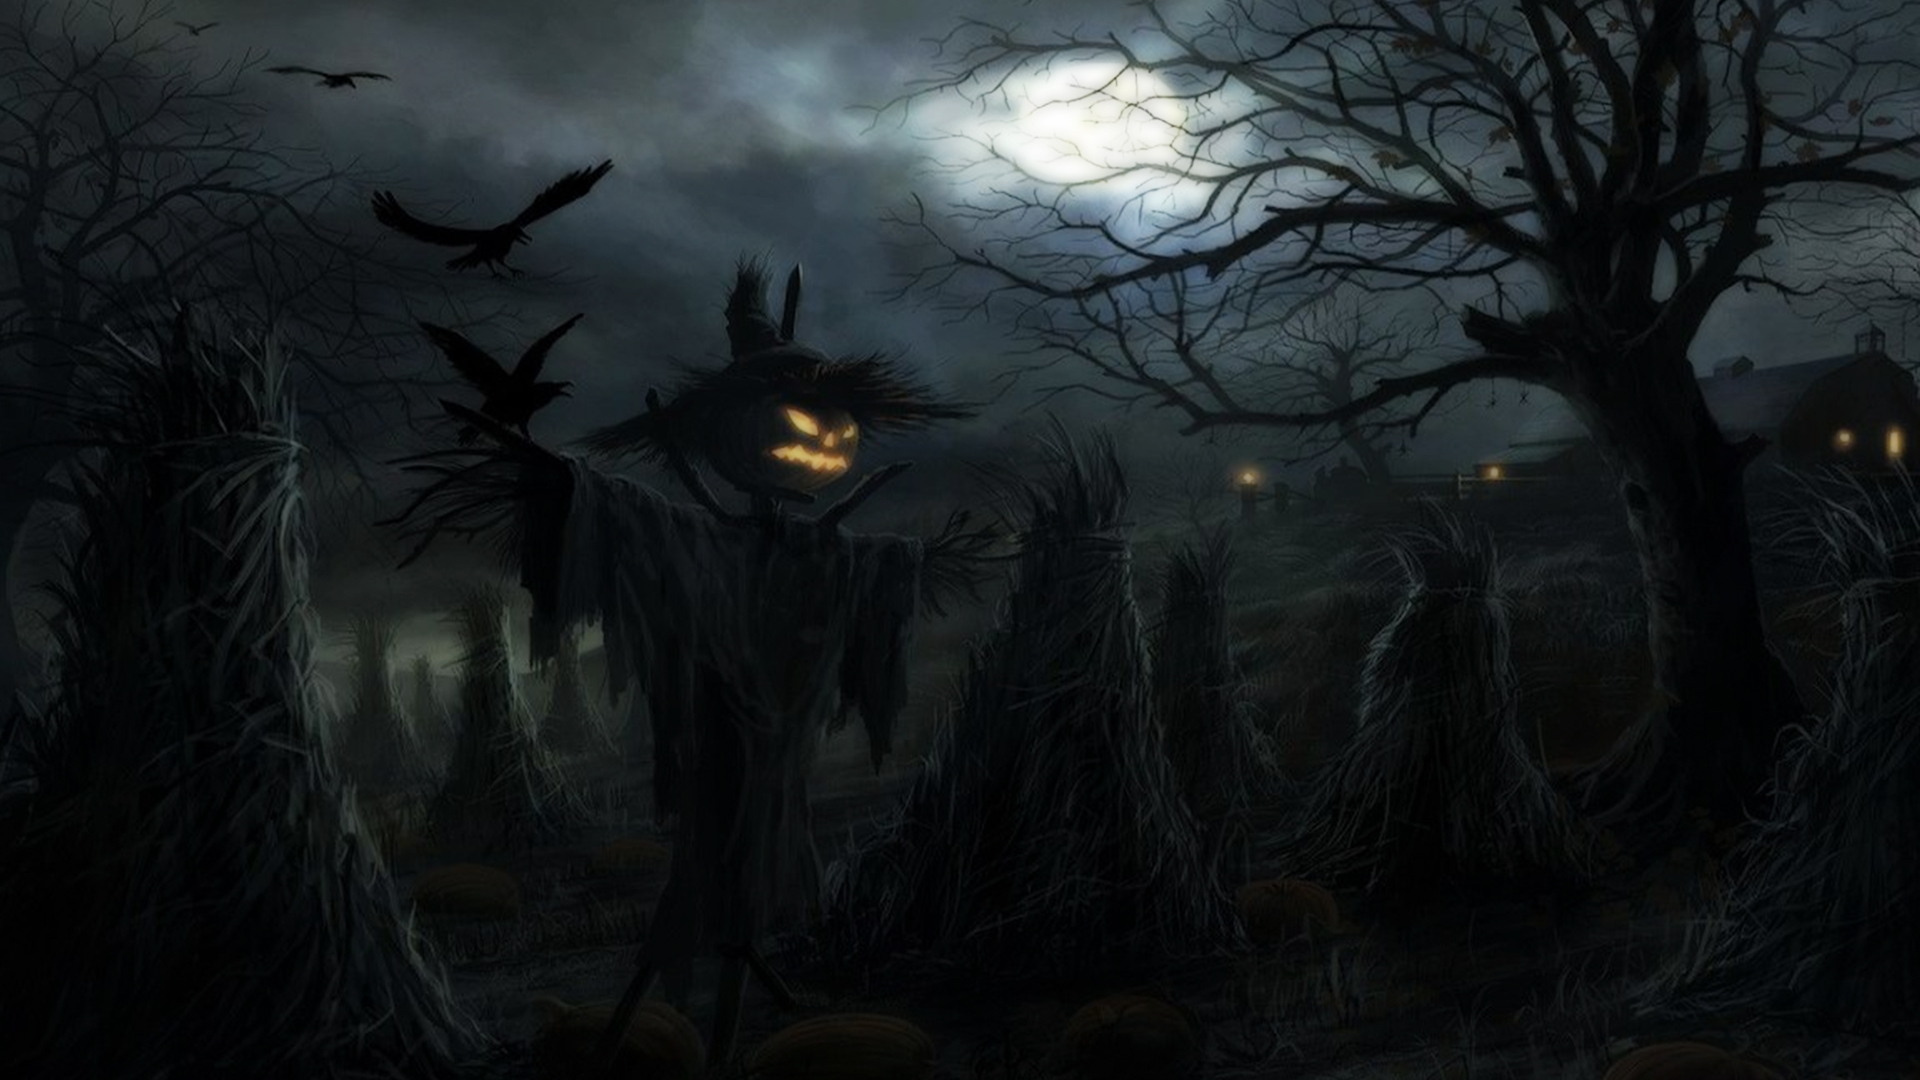 Download Scary Halloween Backgrounds 1920x1080